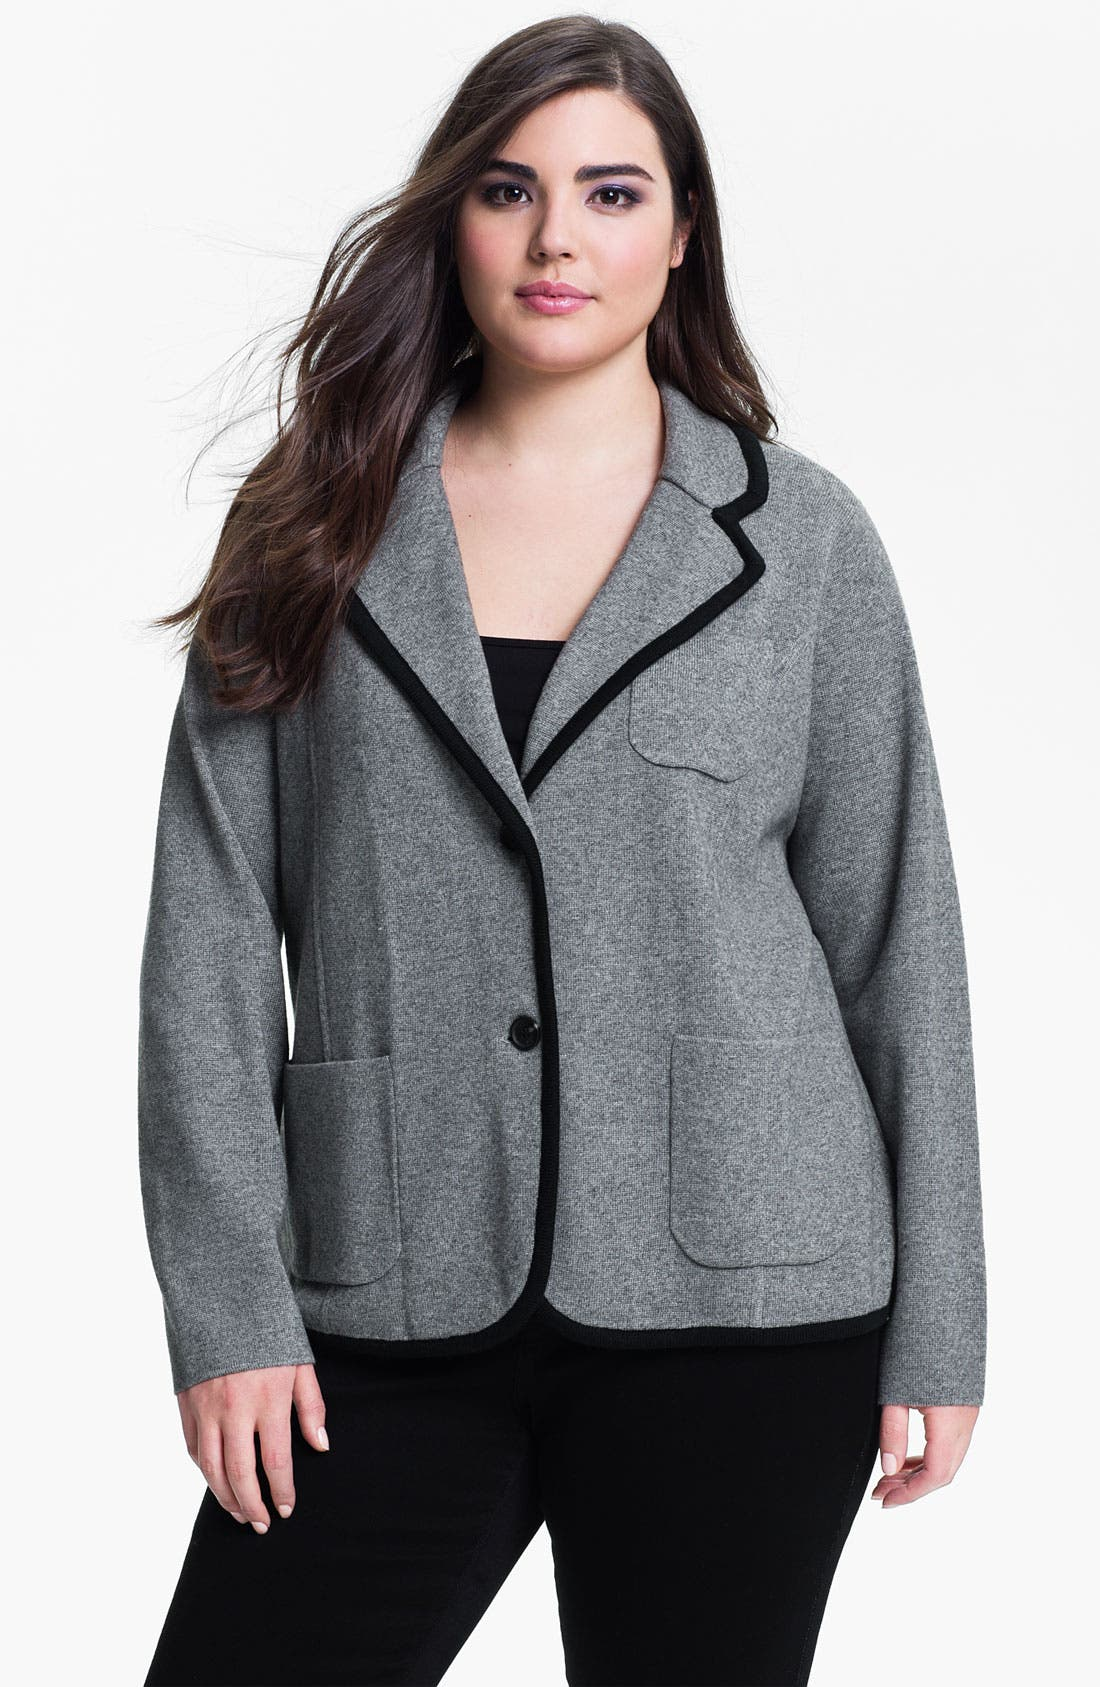 Alternate Image 1 Selected - Vince Camuto Milano Stitch Jacket (Plus)